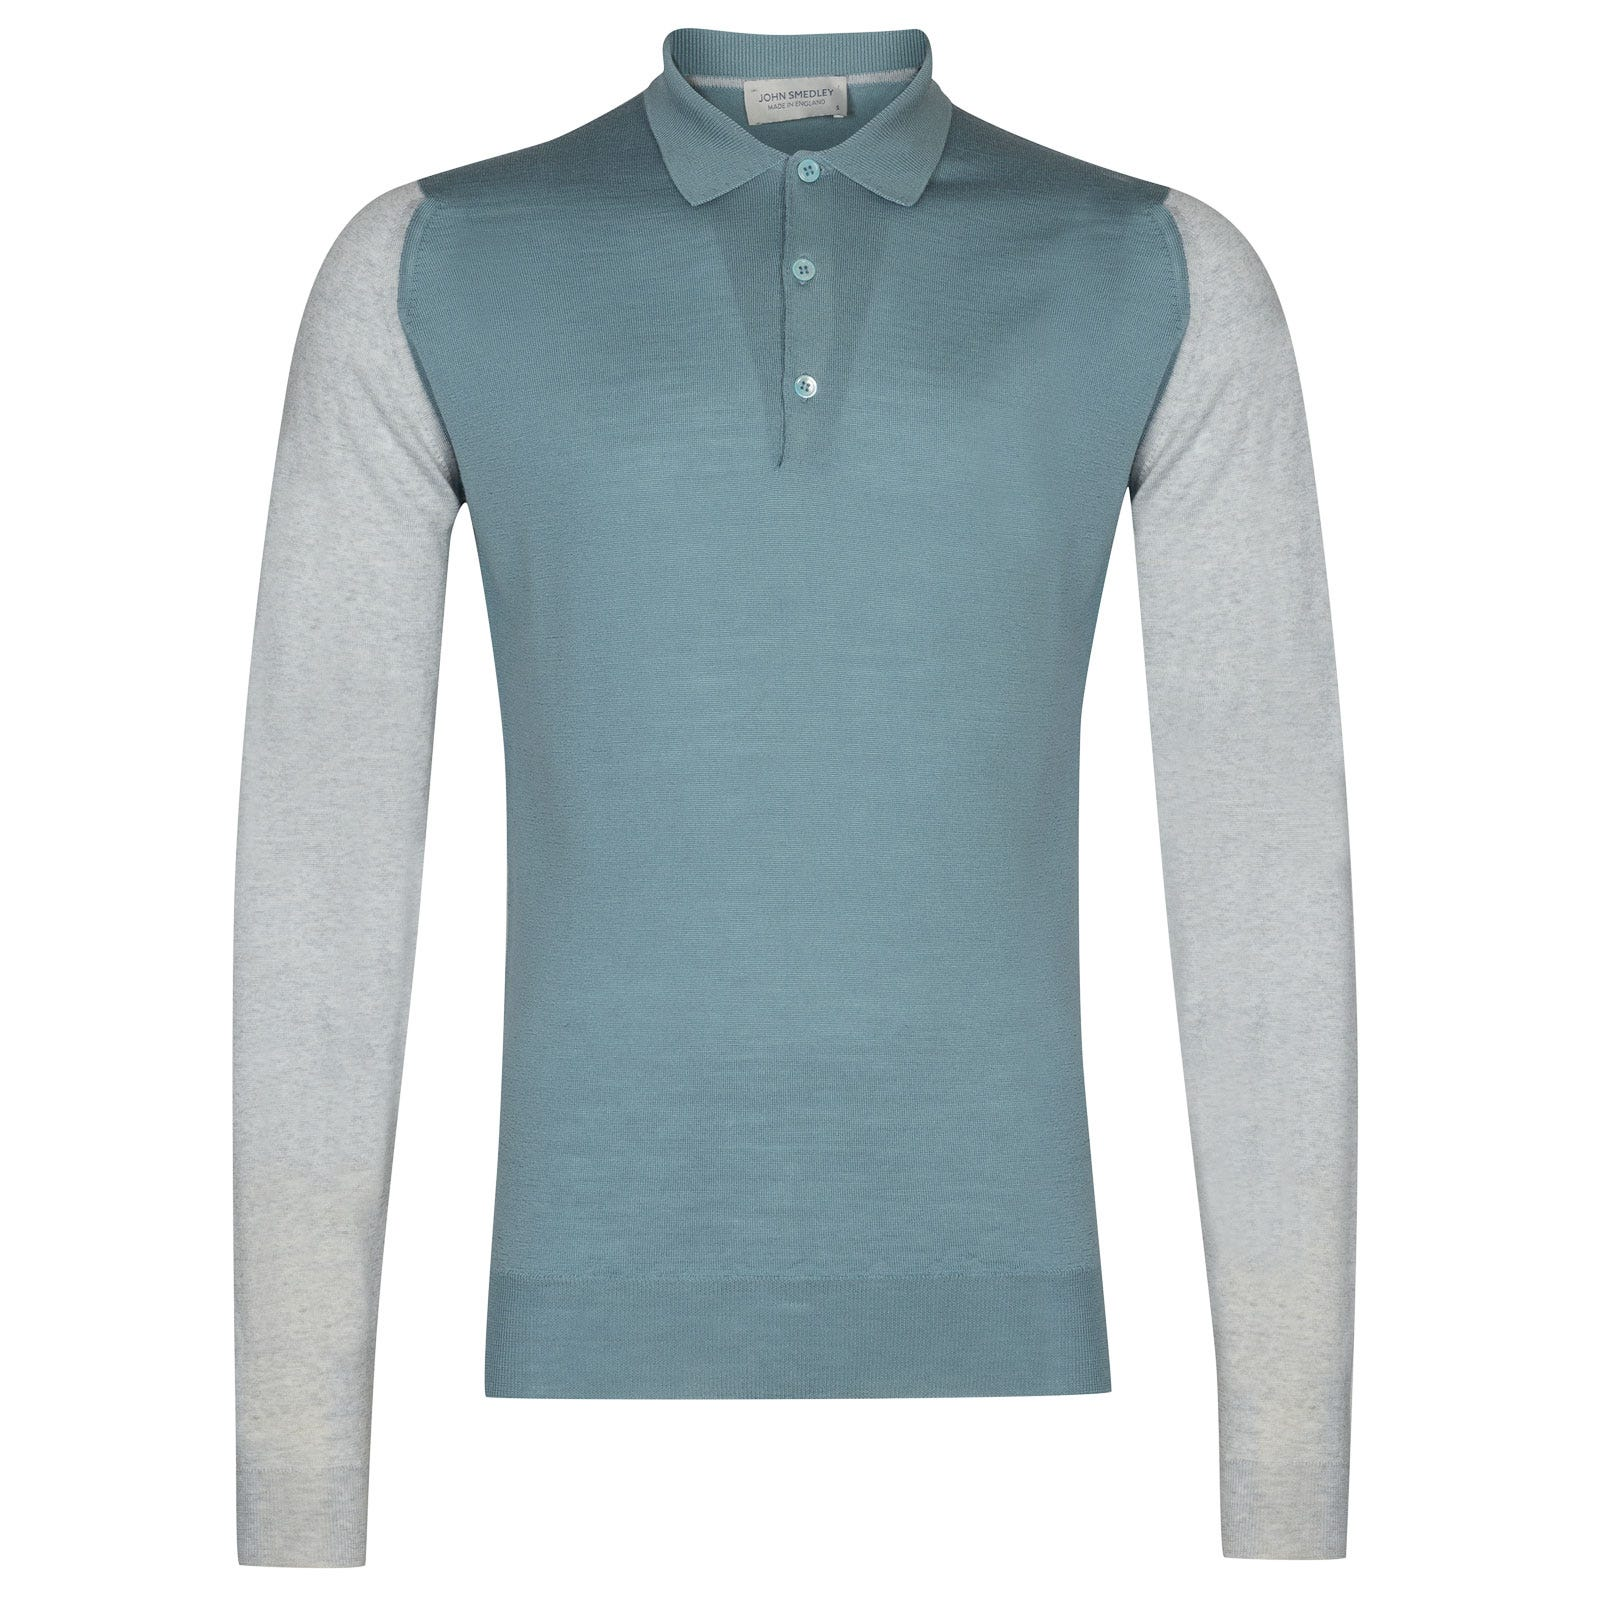 John Smedley Brightgate Merino Wool Shirt in Bardot Grey/Summit Blue-M